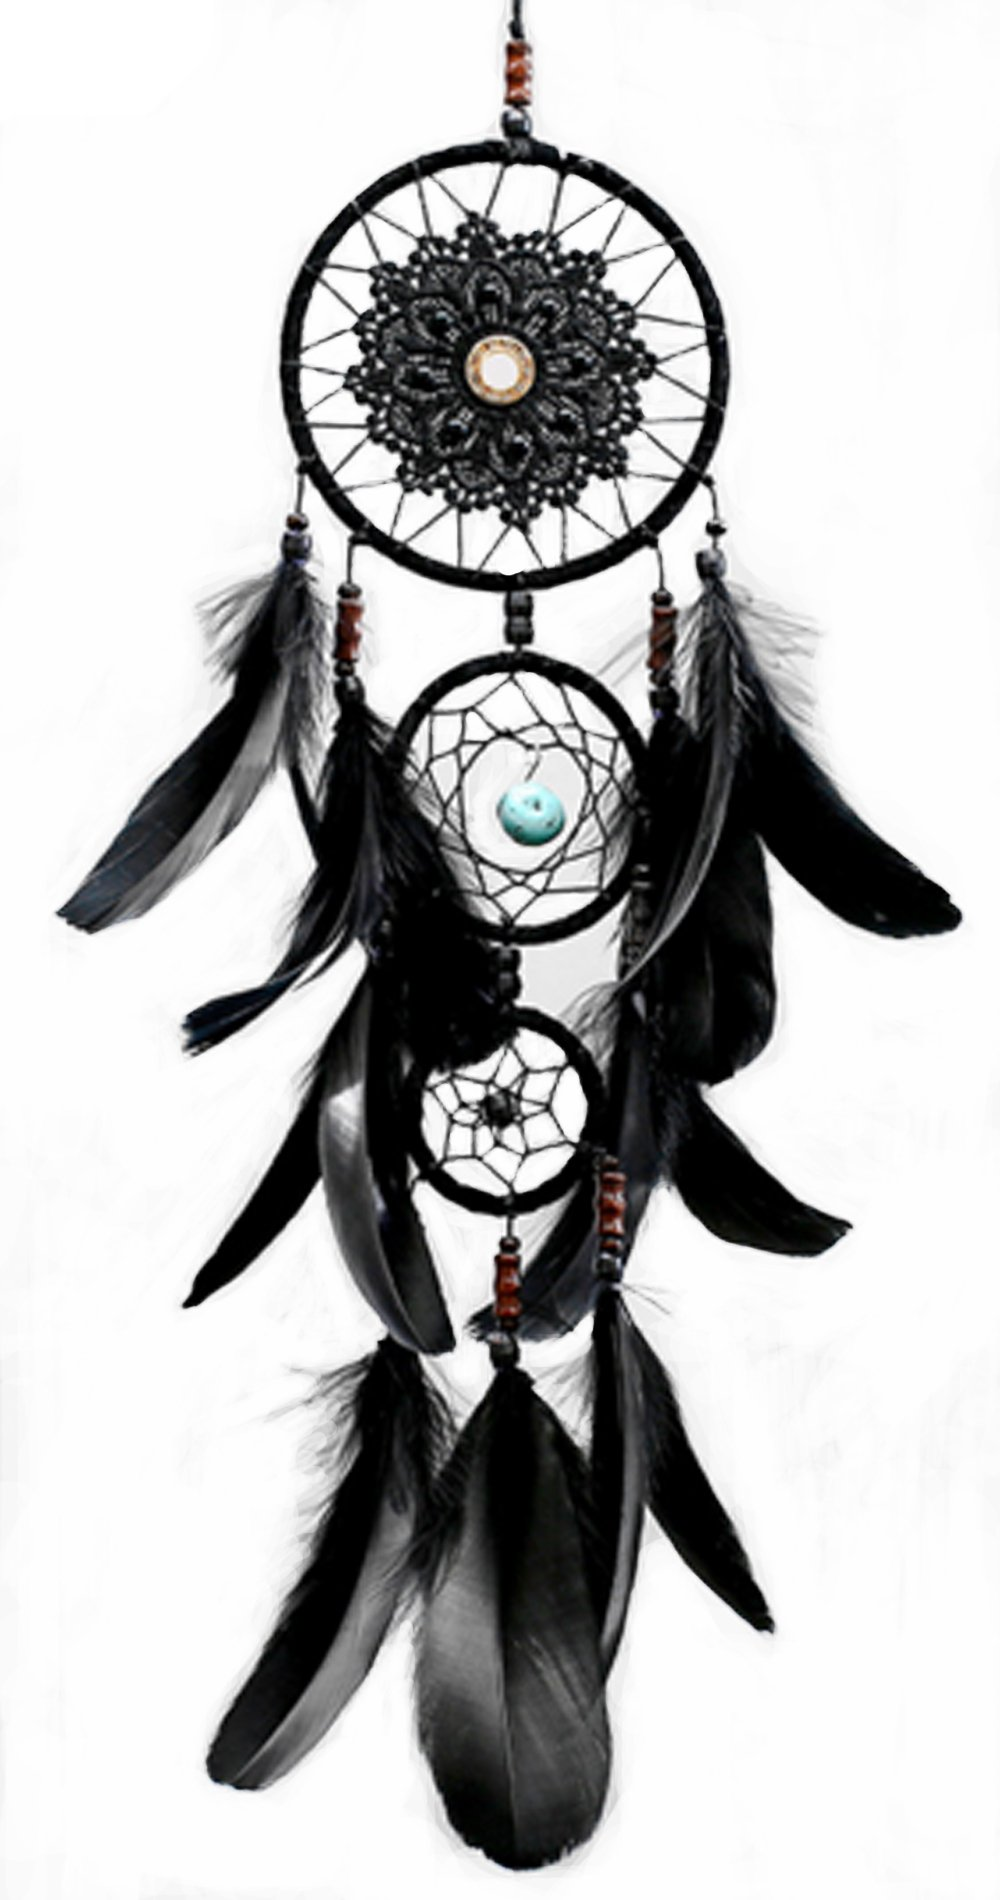 DOFE Handmade Dream Catcher, Dream Catchers with Lace and tassels,Small Dream Catchers for room decoration.Best Gift for Girls. (Black)